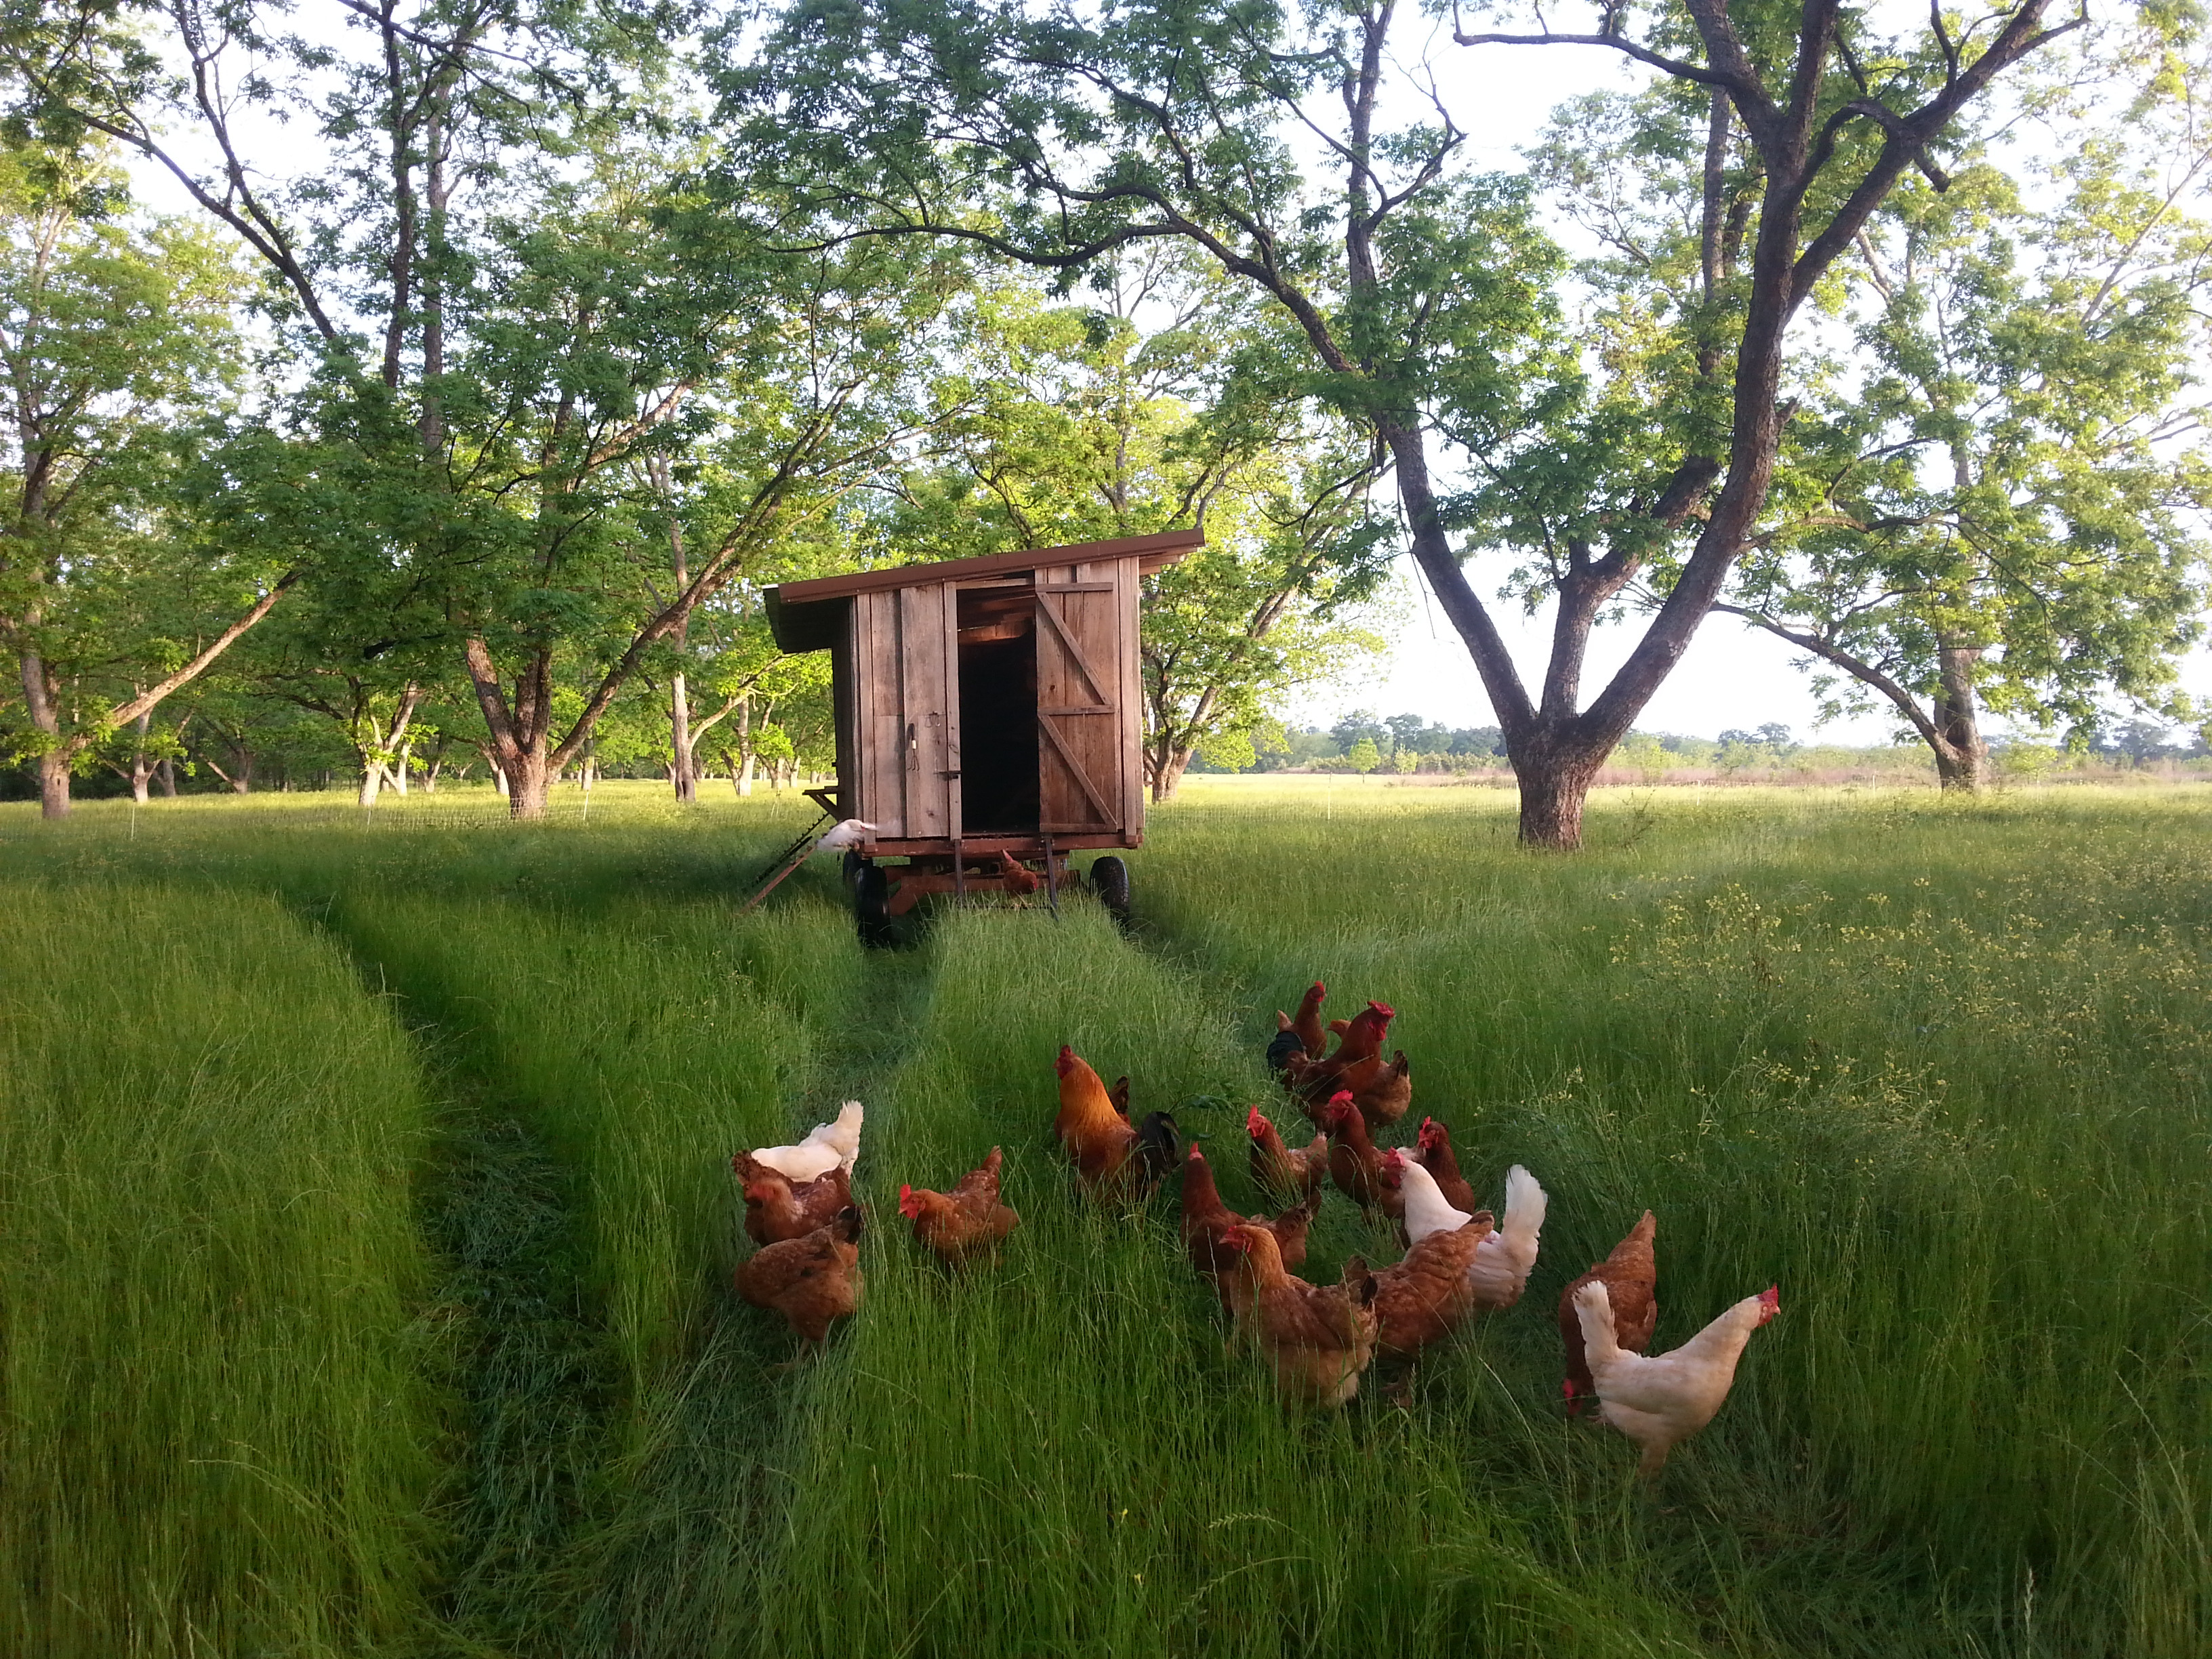 earlymorningchickens.jpg